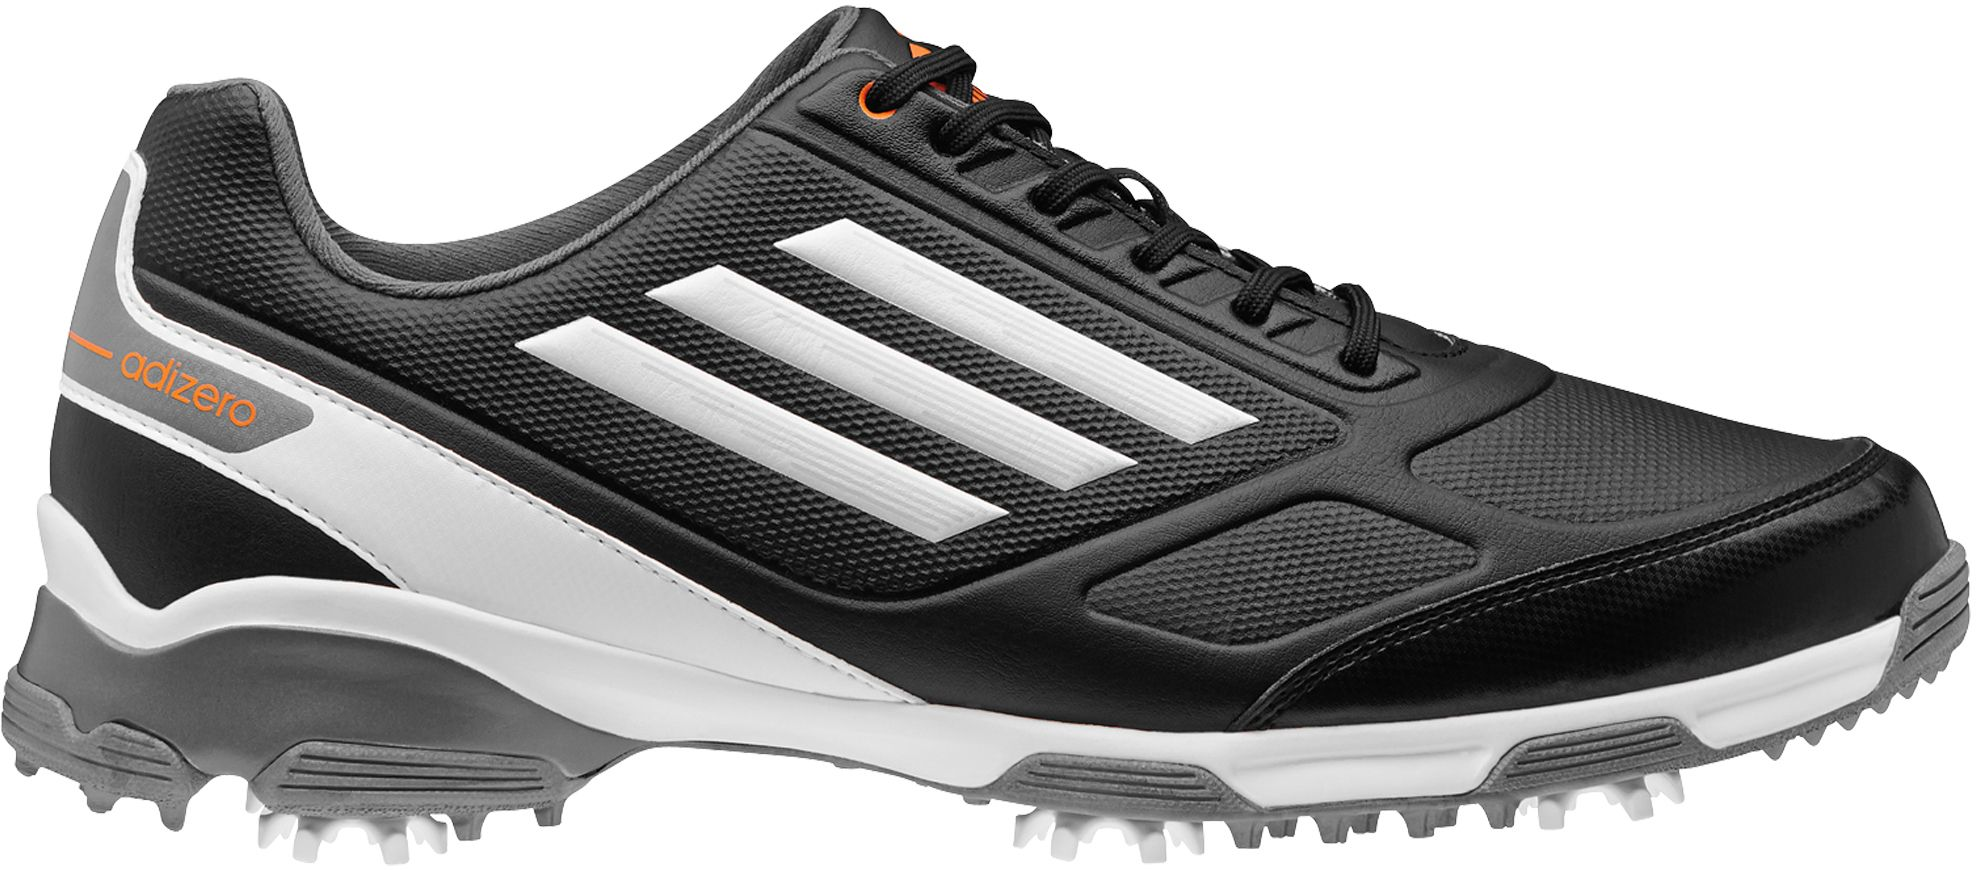 Adidas Golf Shoes Adizero Review